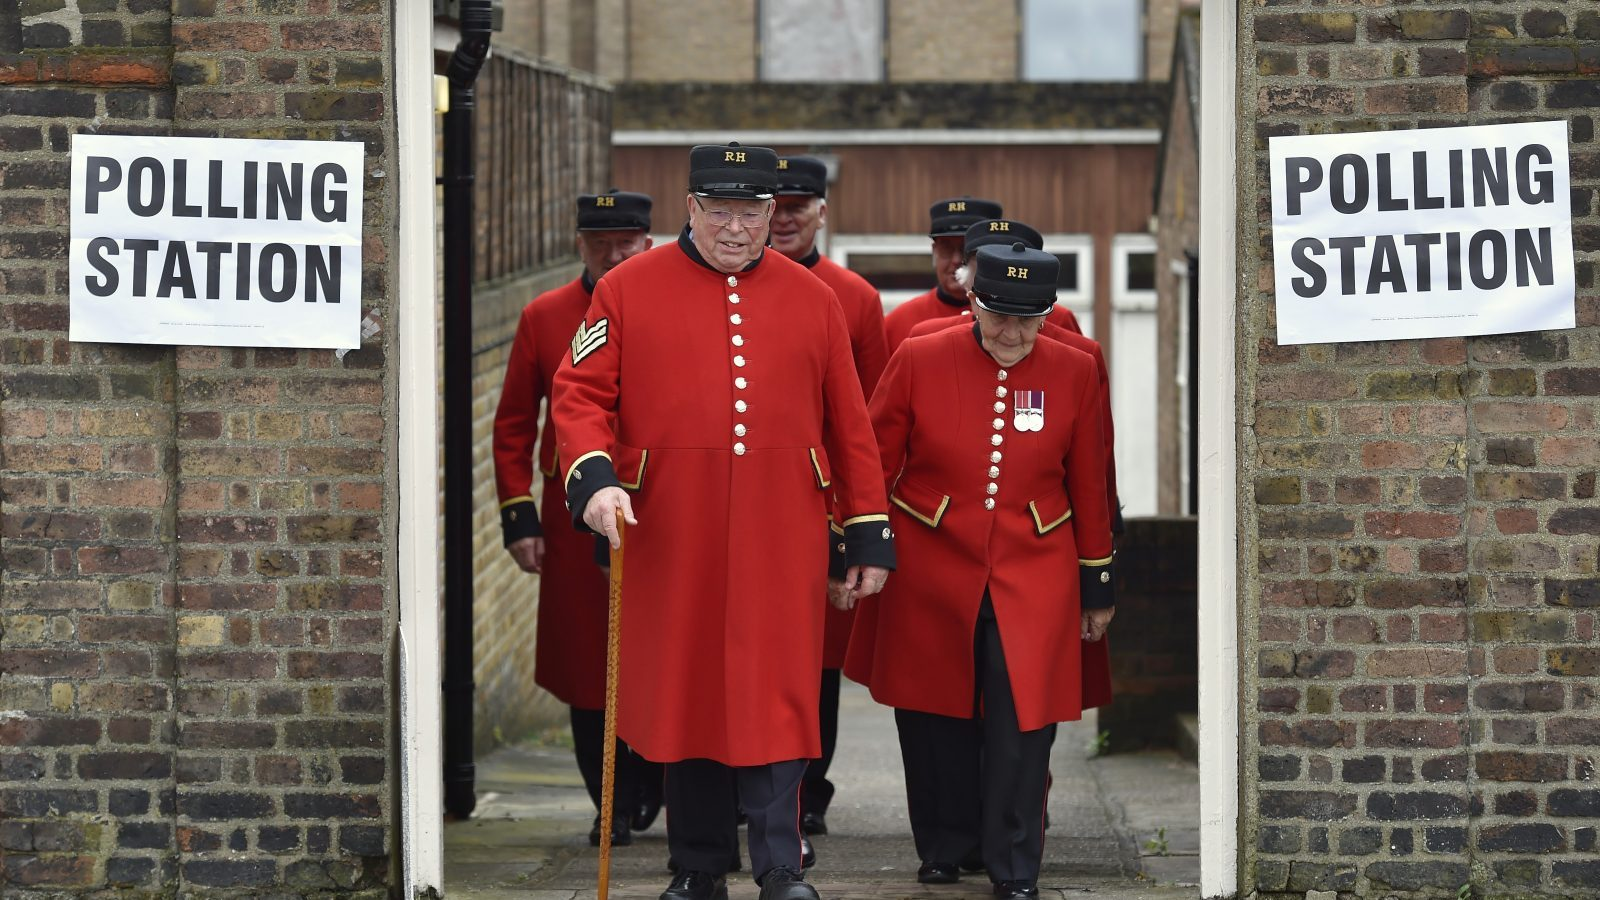 Chelsea Pensioners leave after voting in the EU referendum, at a polling station in Chelsea in London, Britain June 23, 2016.